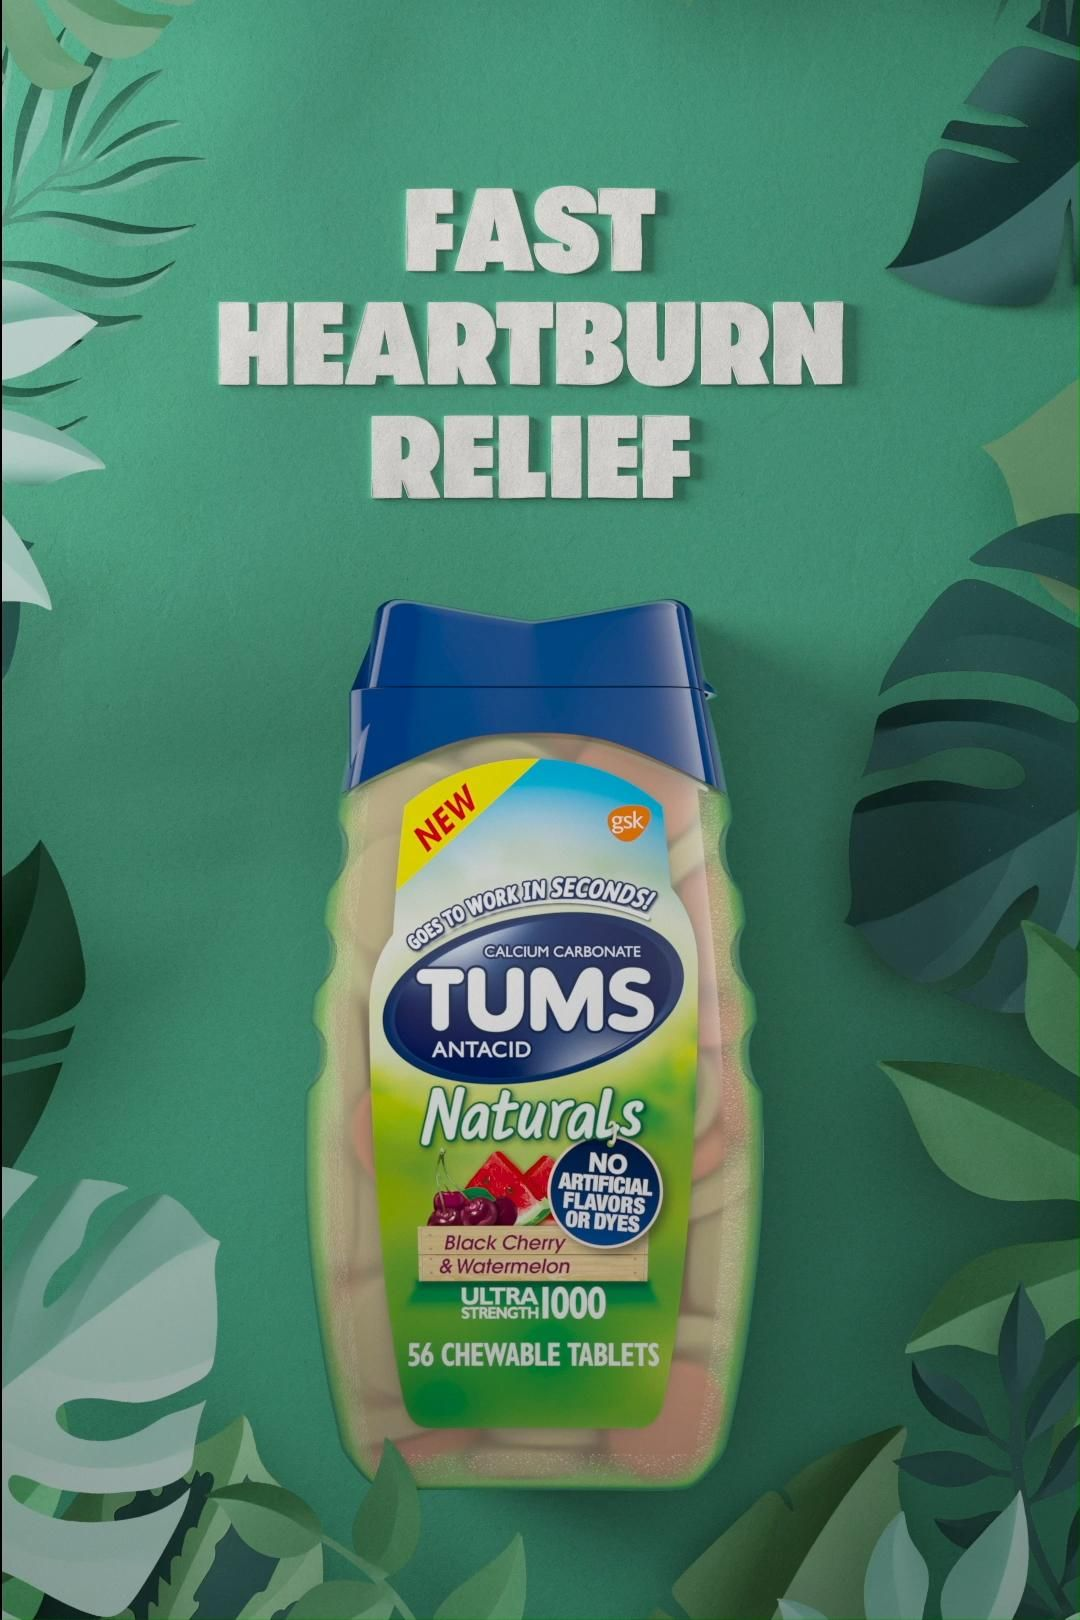 TUMS Naturals. Fast heartburn relief.